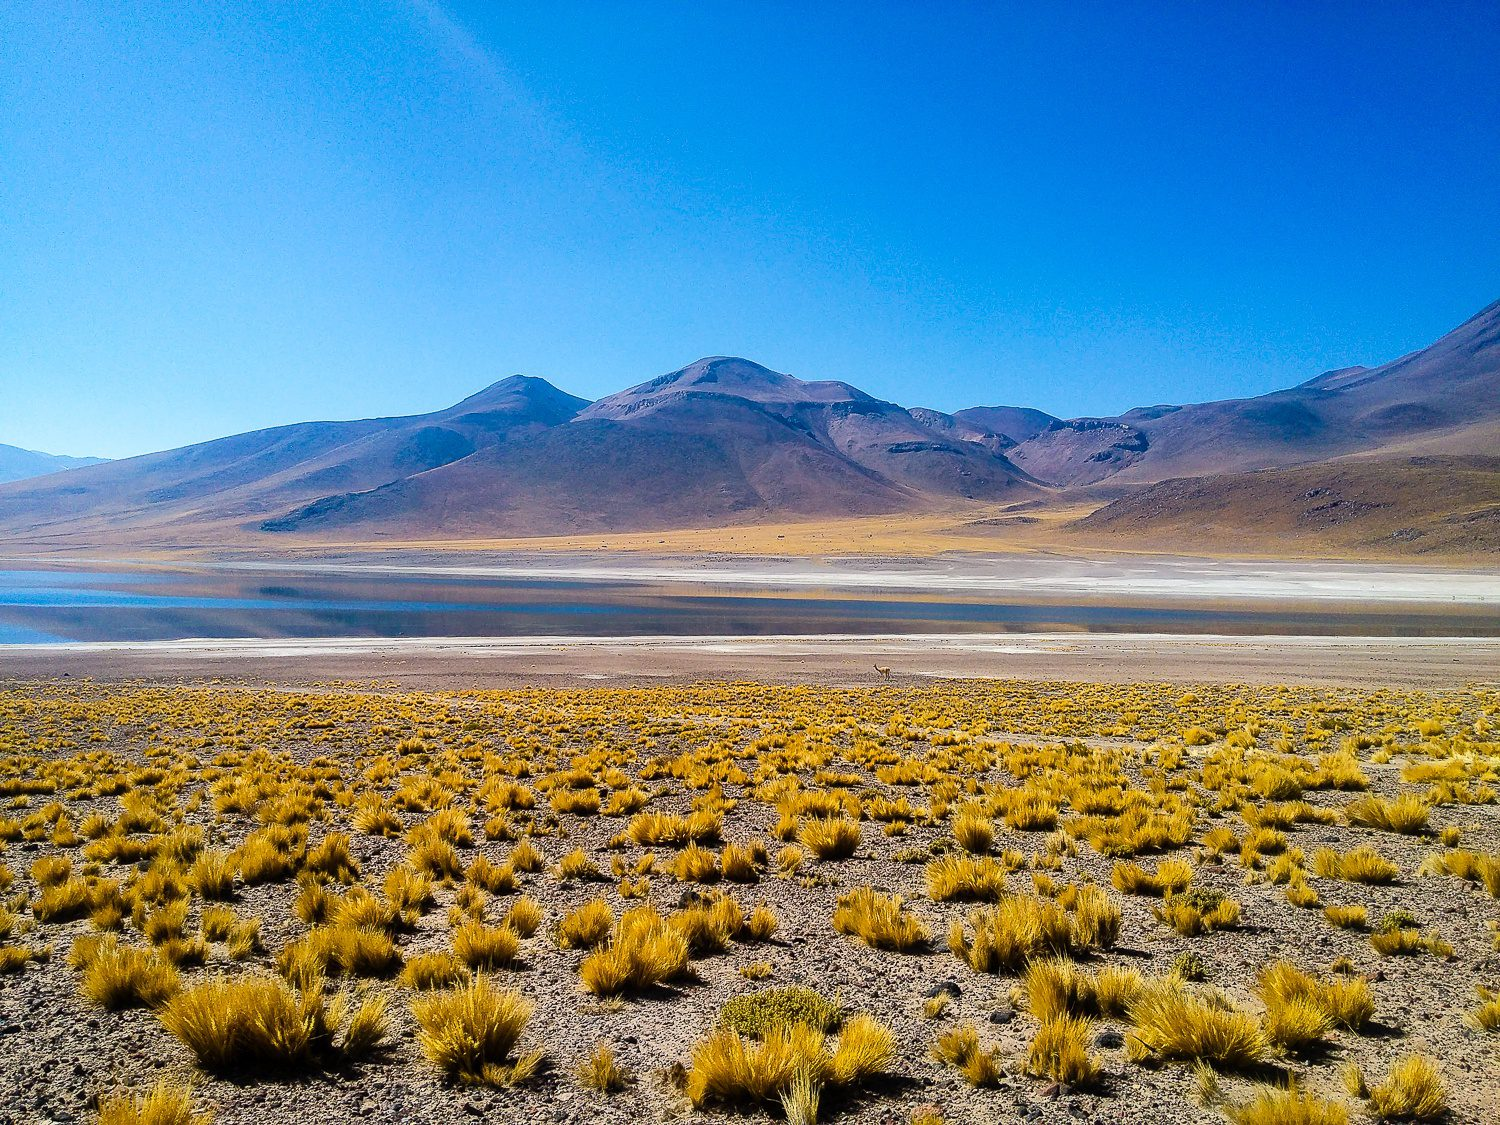 Atacama, the world's driest desert, which is located in Northern Chile.